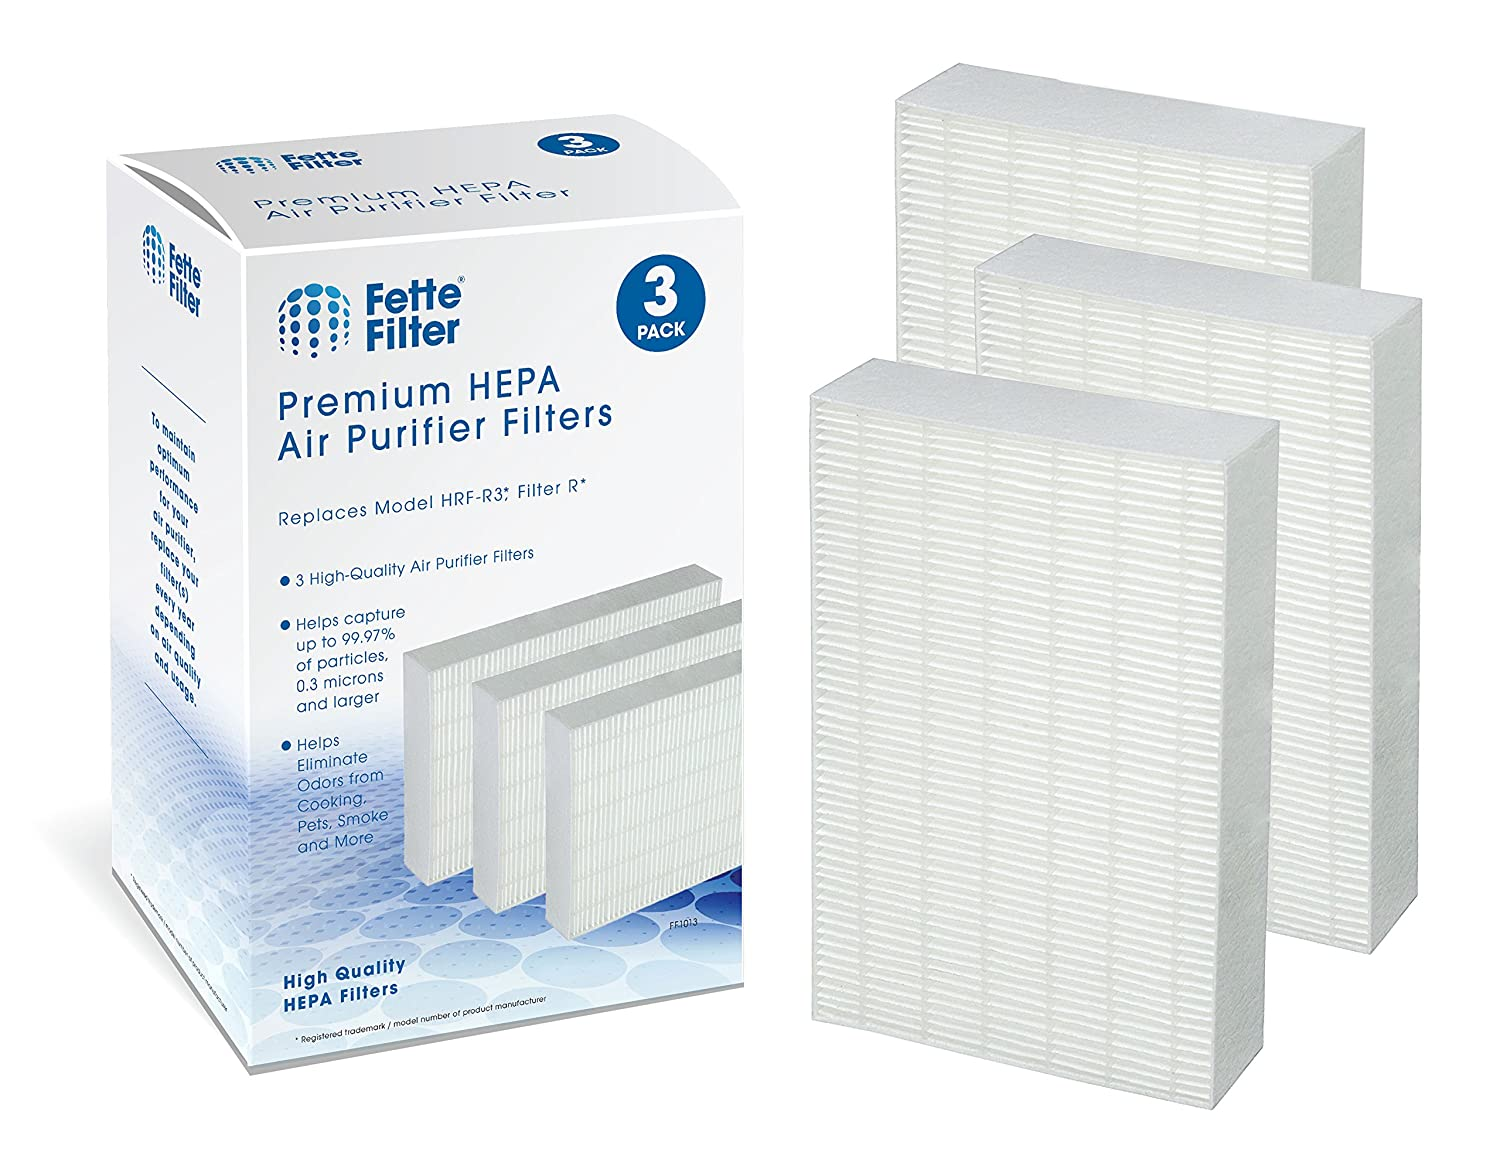 Fette Filter - Air Purifier Filters Compatible with Honeywell HRF-R1, HRF-R2, HRF-R3, Filter R (3-Pack)